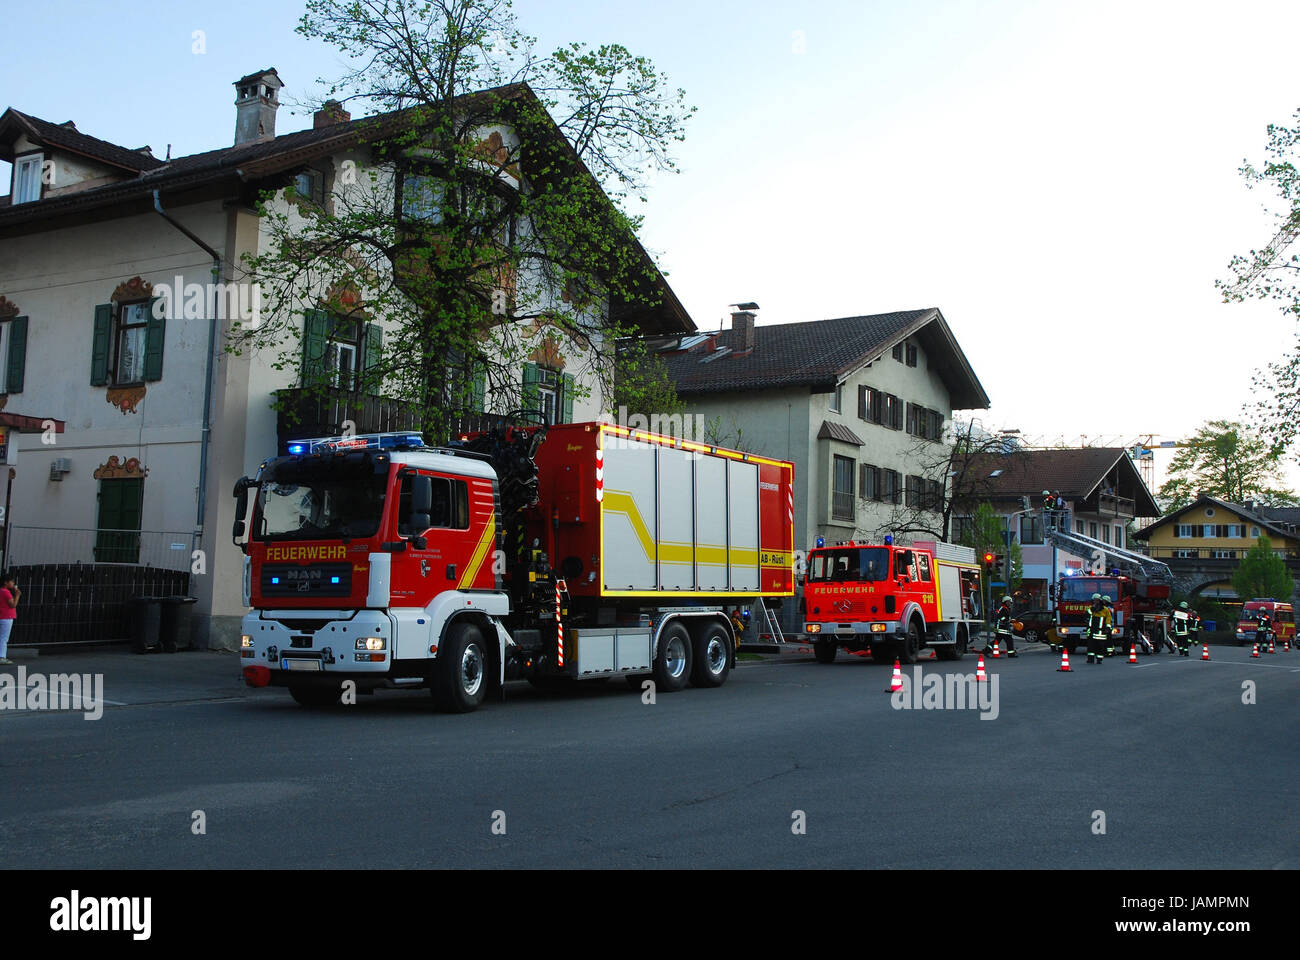 Street,fire entry,fire engines,street,fire brigade,entry,fire